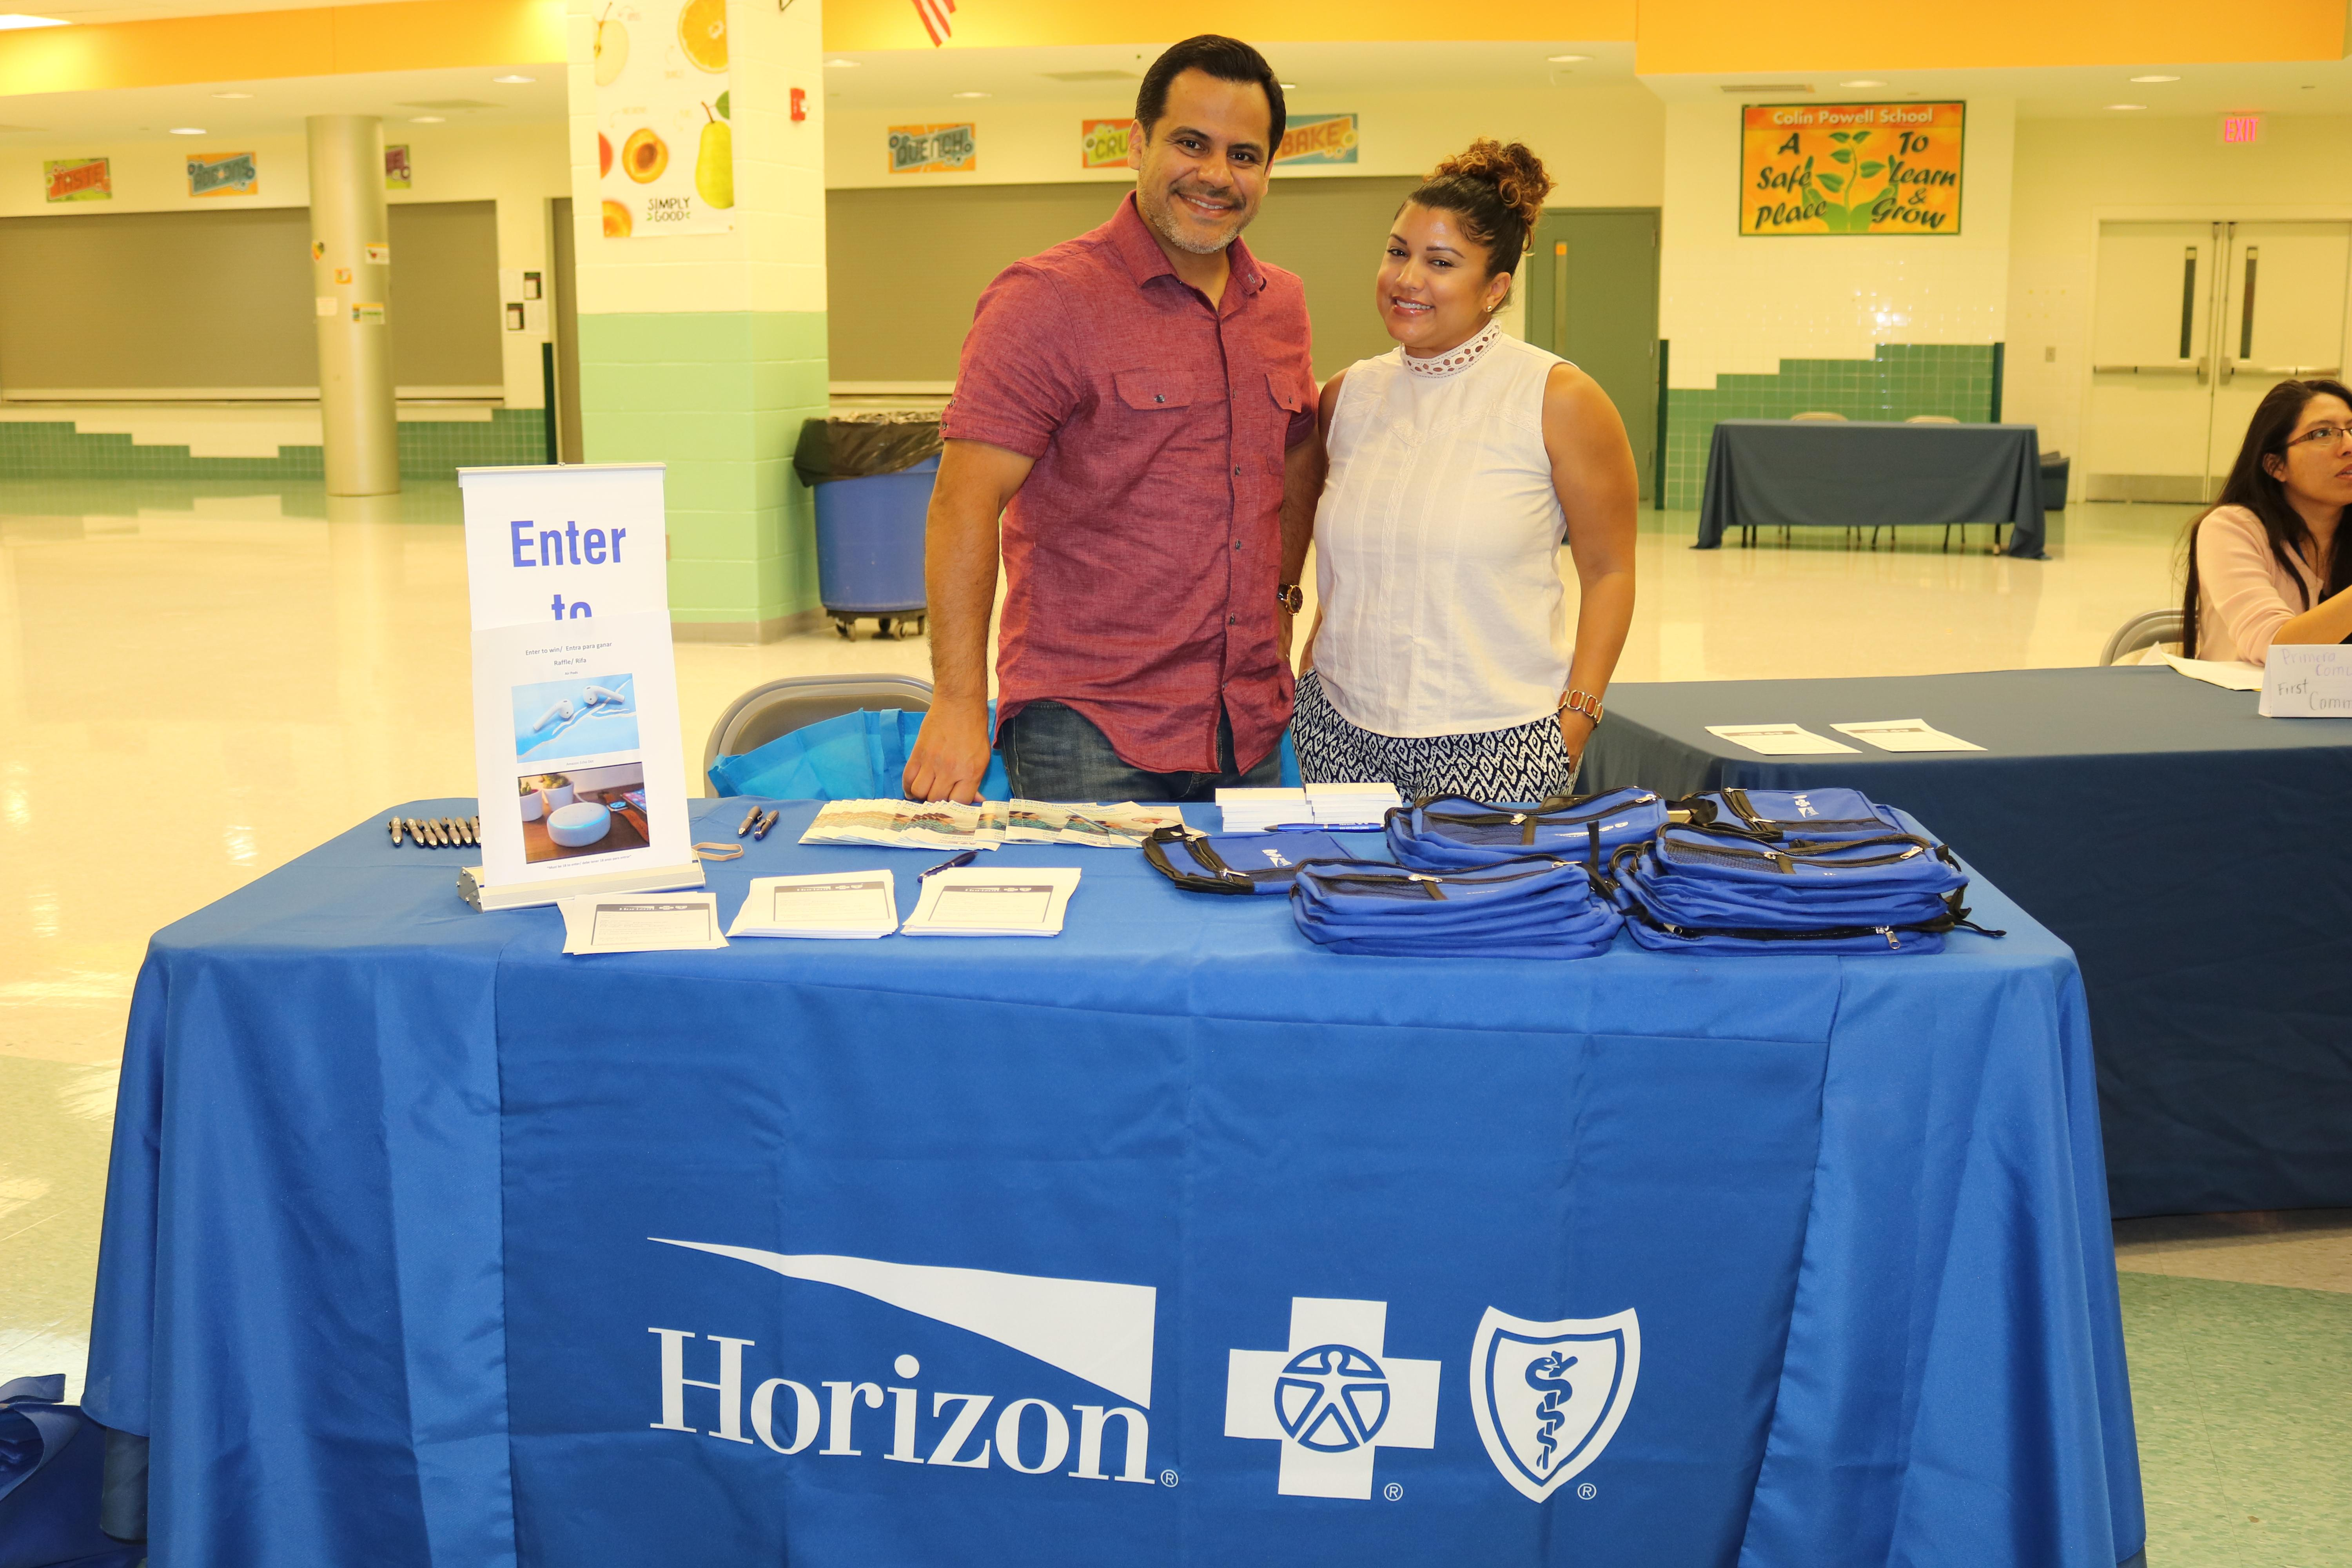 Horizon Representatives at the table with information and gifts